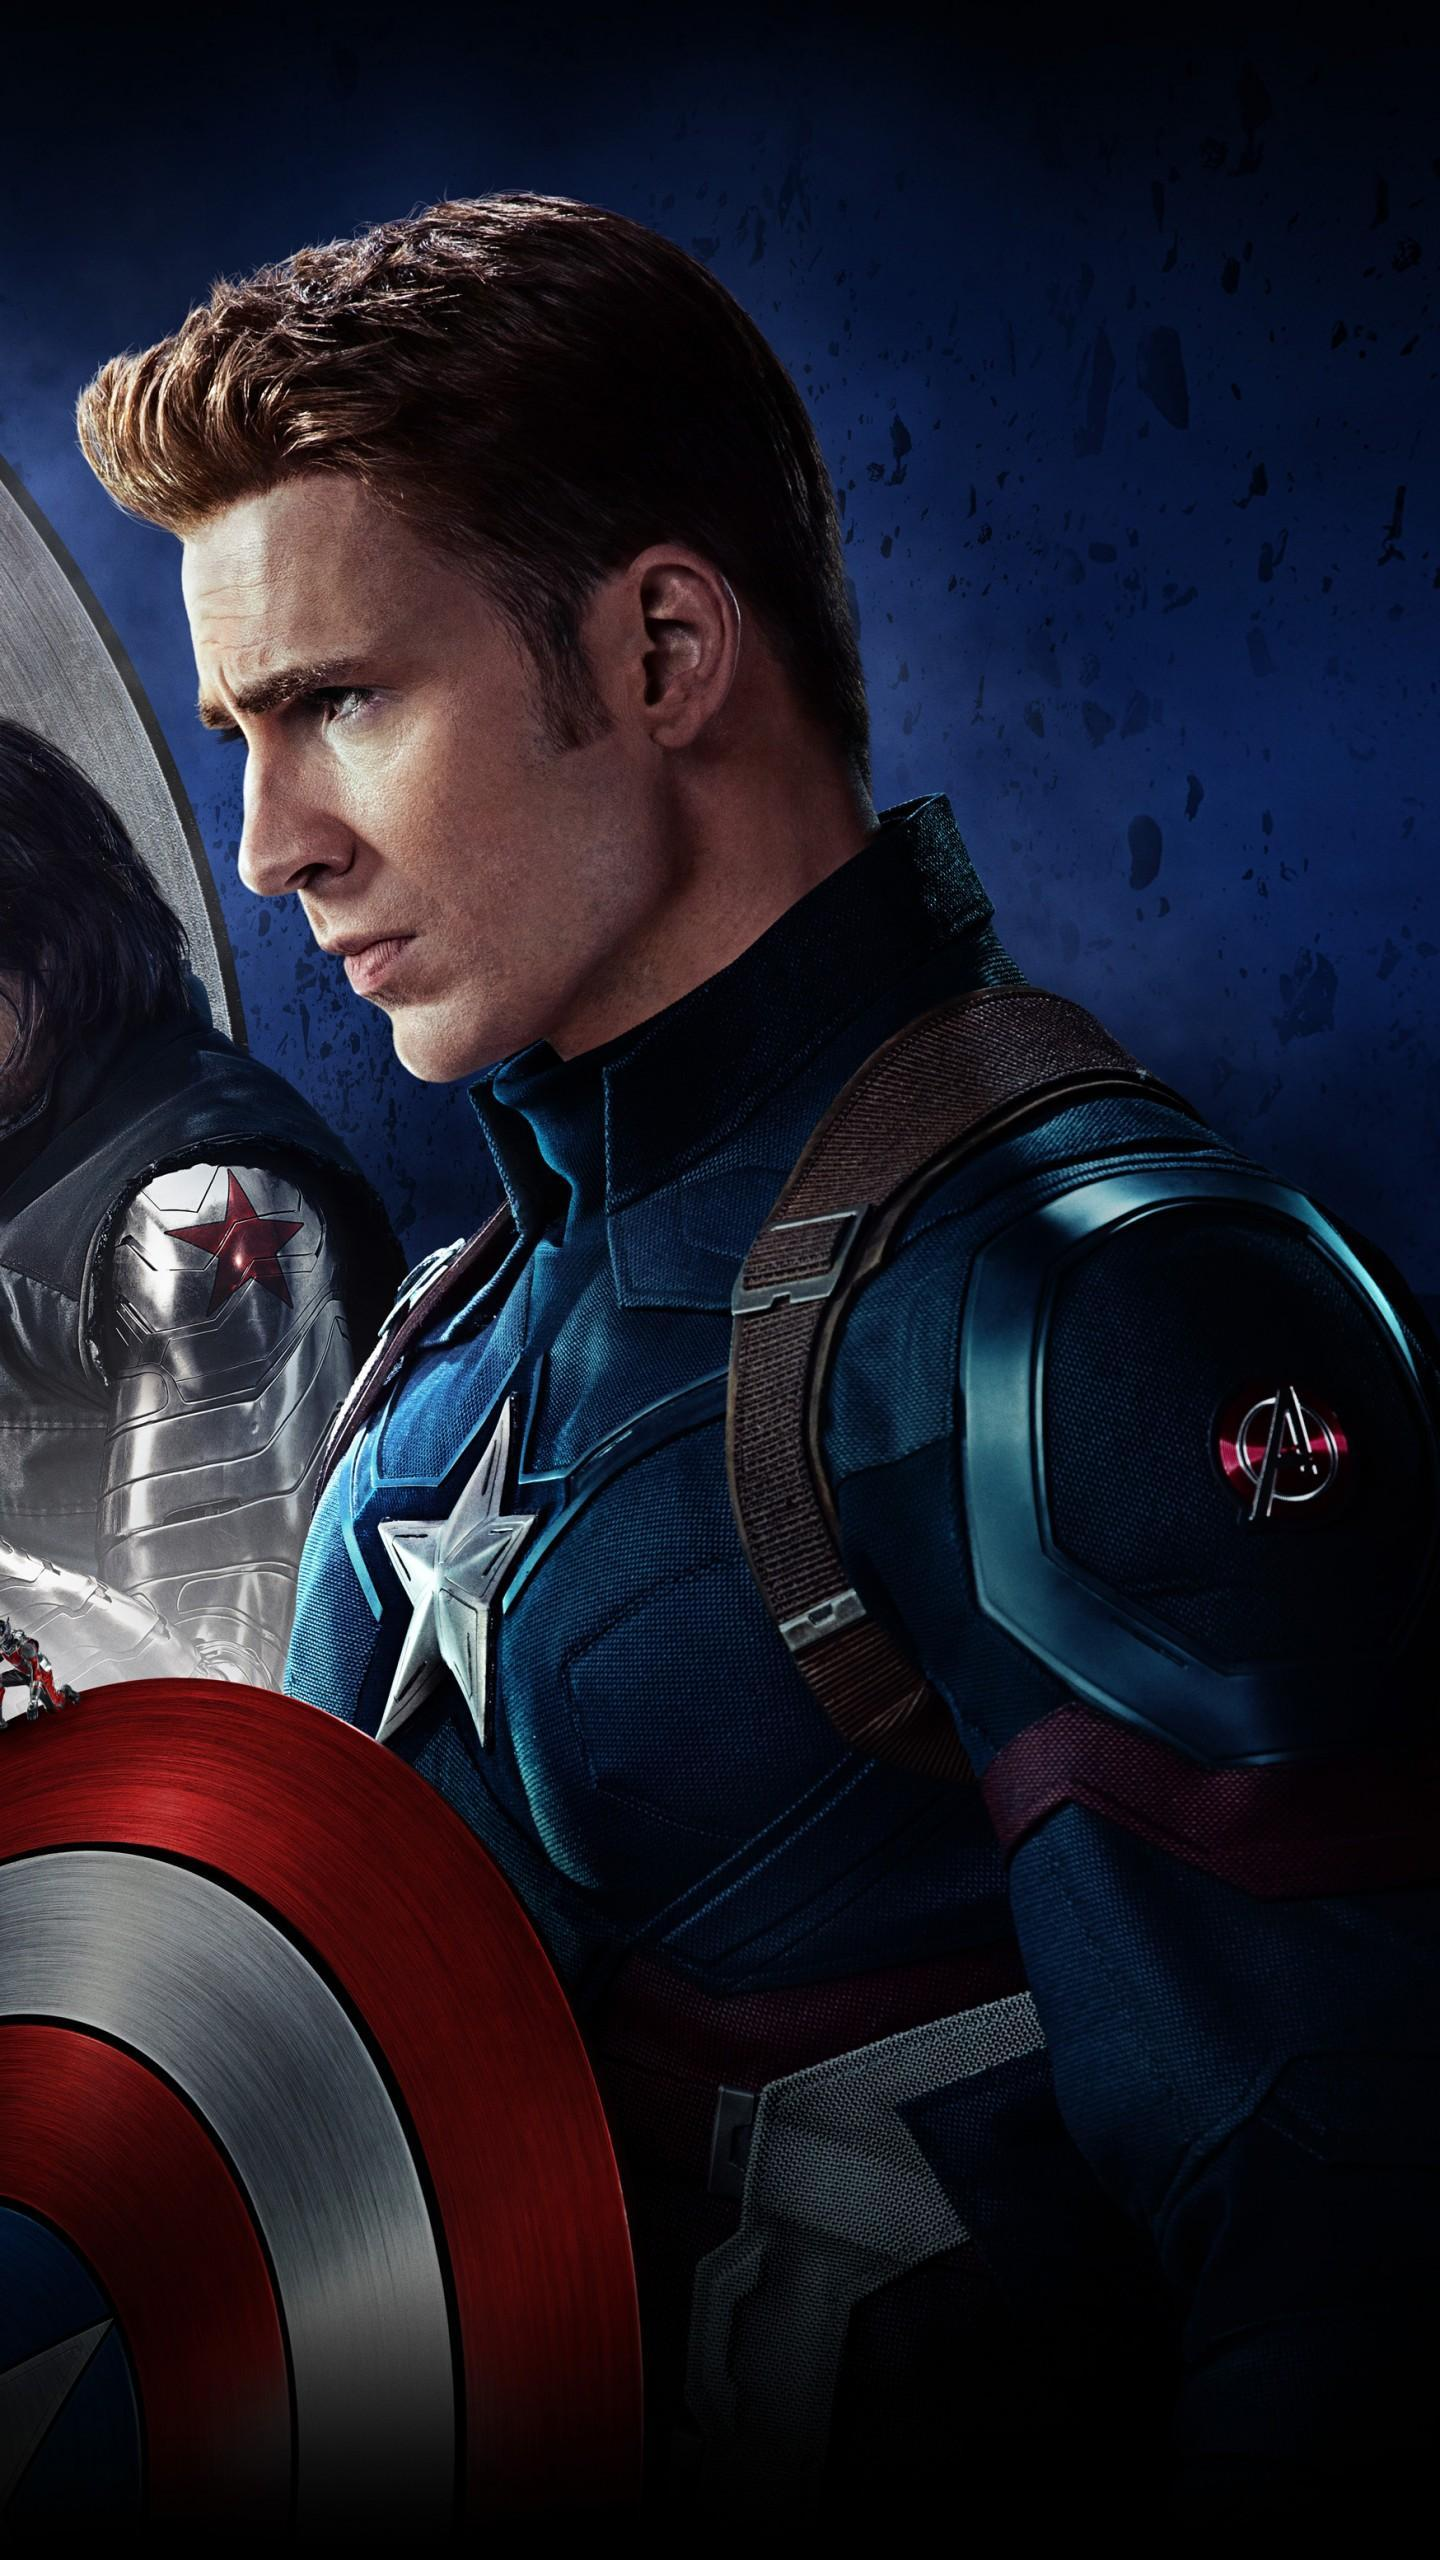 Captain America Hd Android Wallpapers - Wallpaper Cave